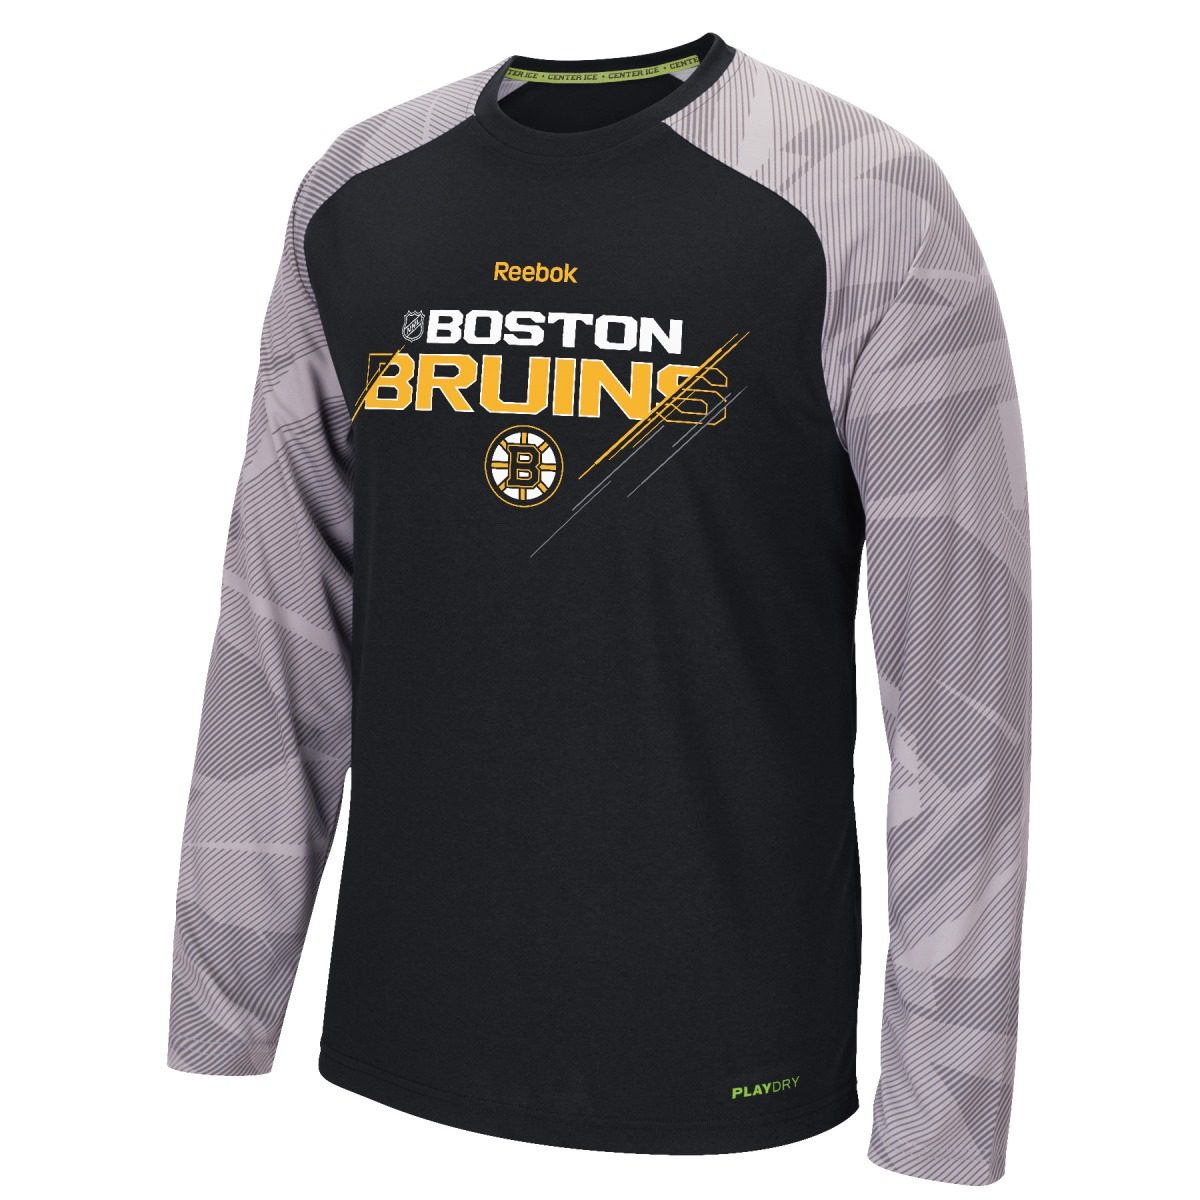 Boston Bruins Reebok NHL 2015 Center Ice TNT Long Sleeve Performance Shirt